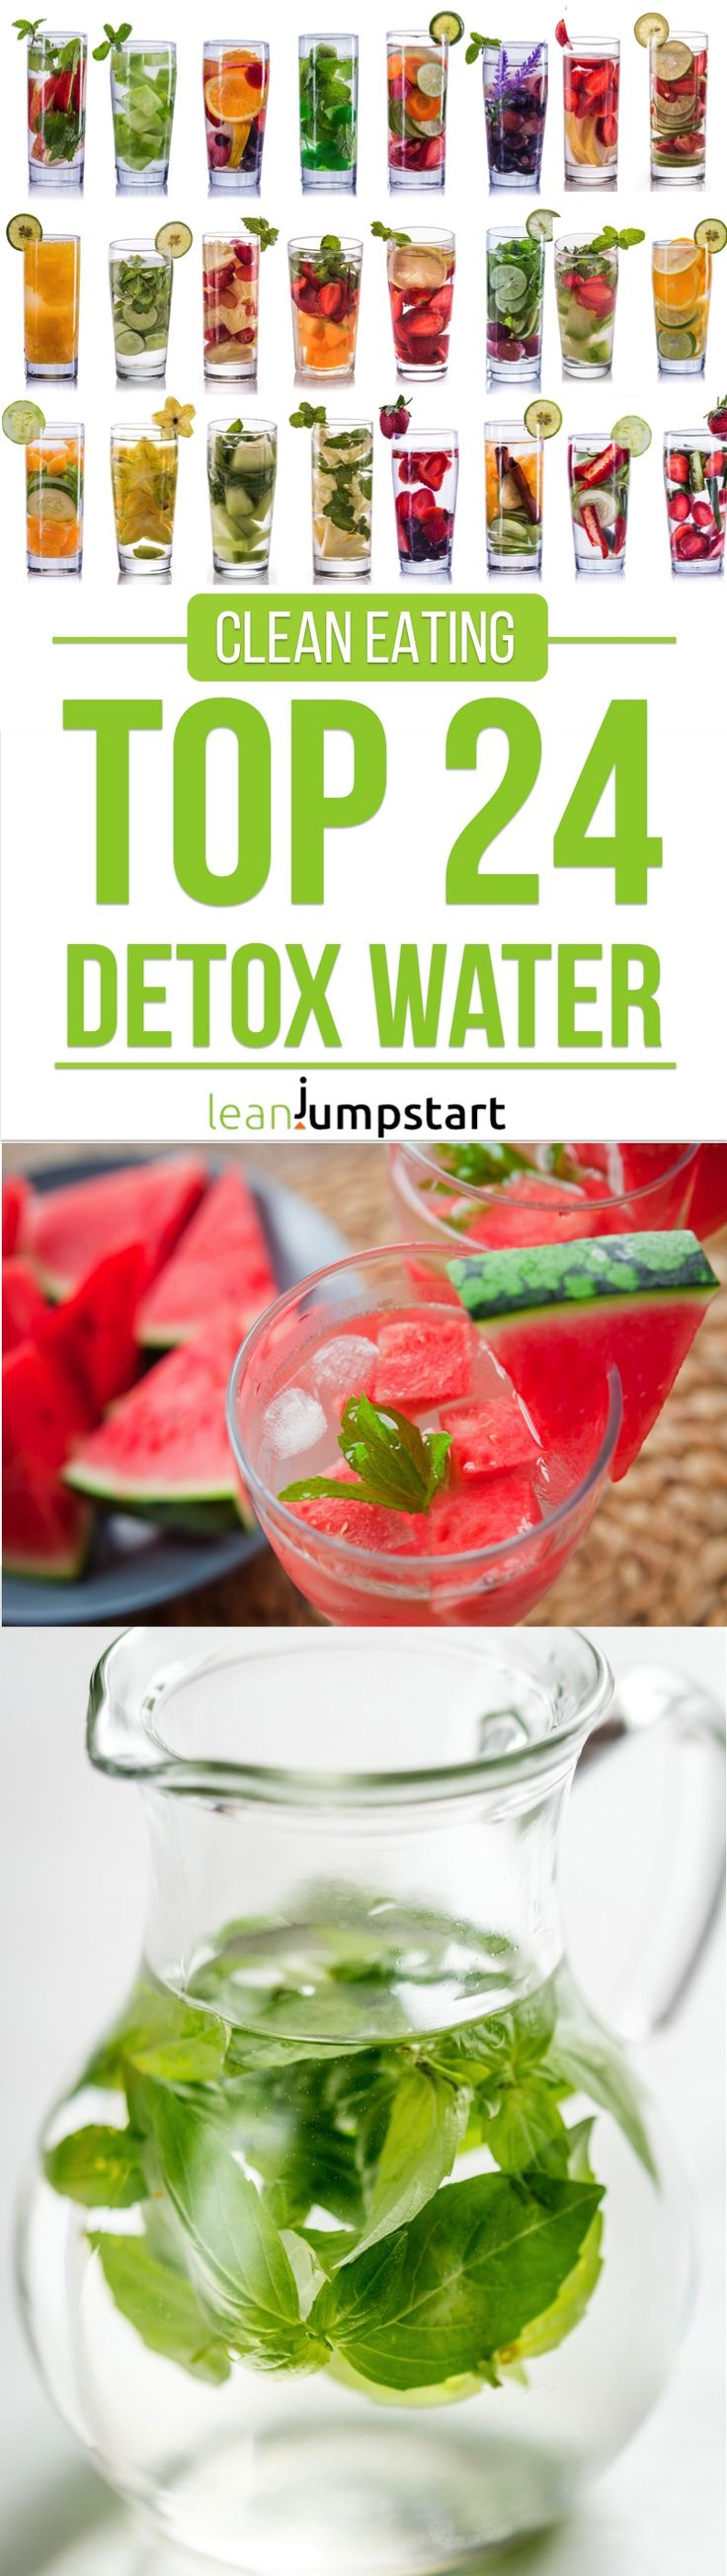 Detox Water: Top 24 clean recipes to boost your metabolism